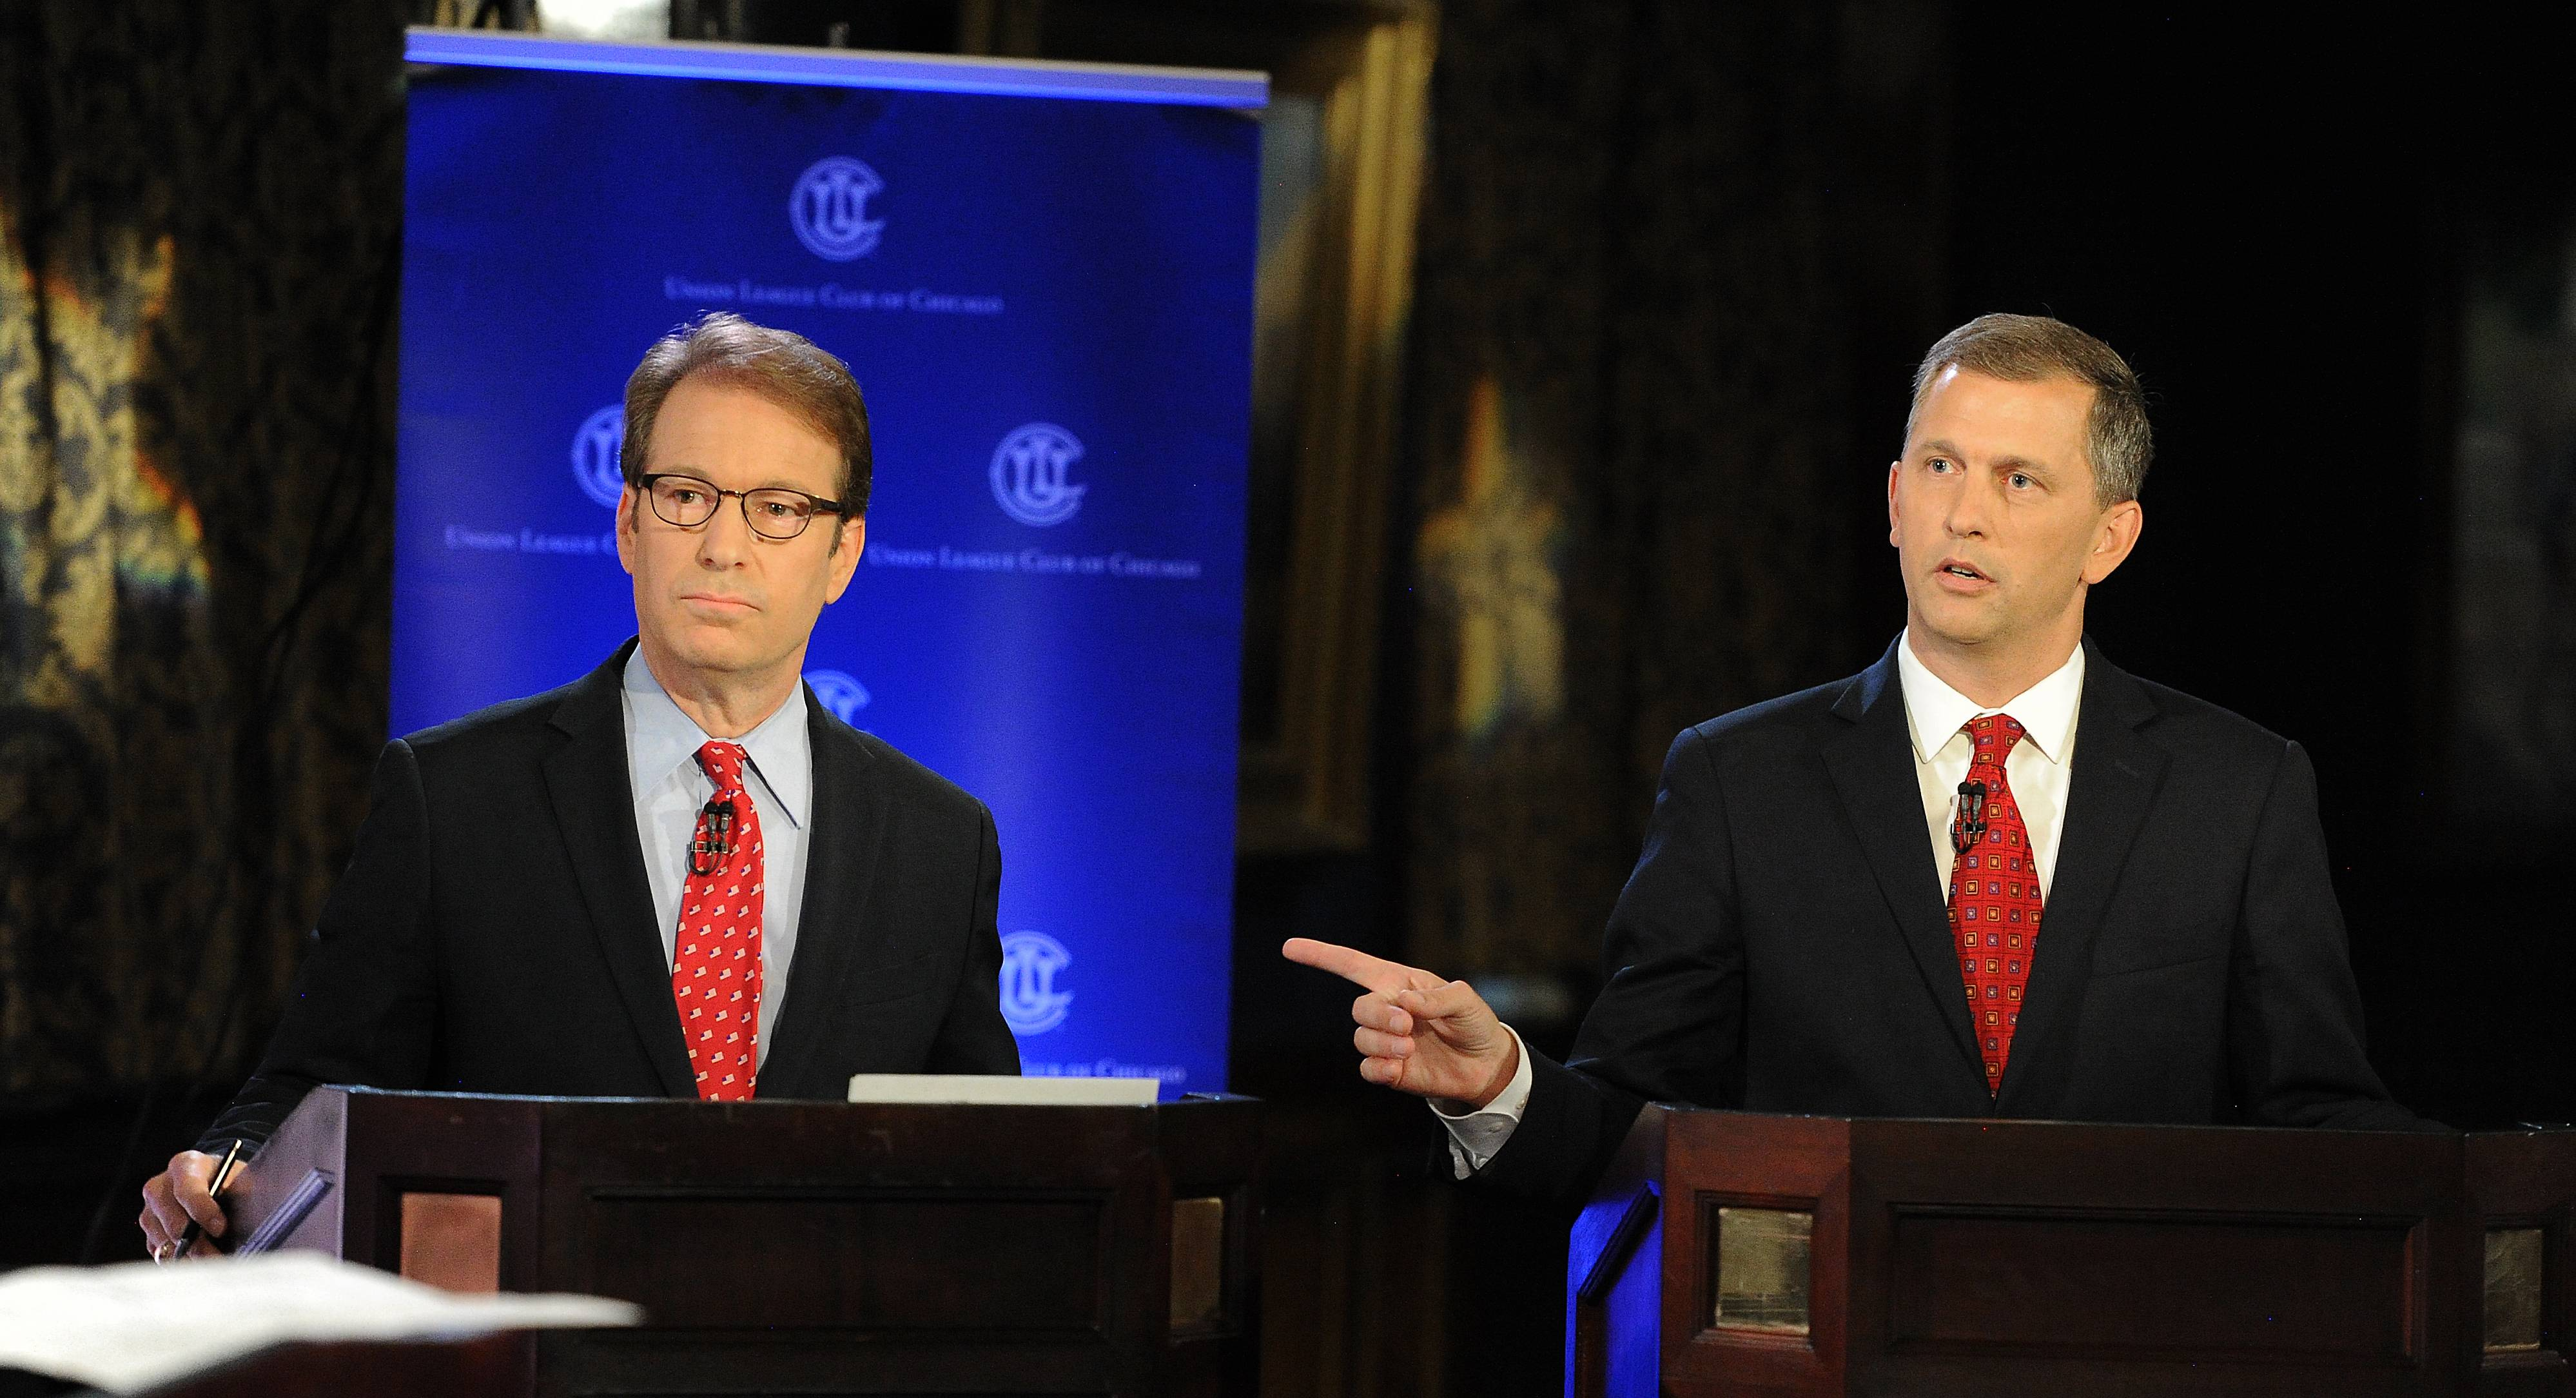 Where Casten, Roskam disagree on gun control measures